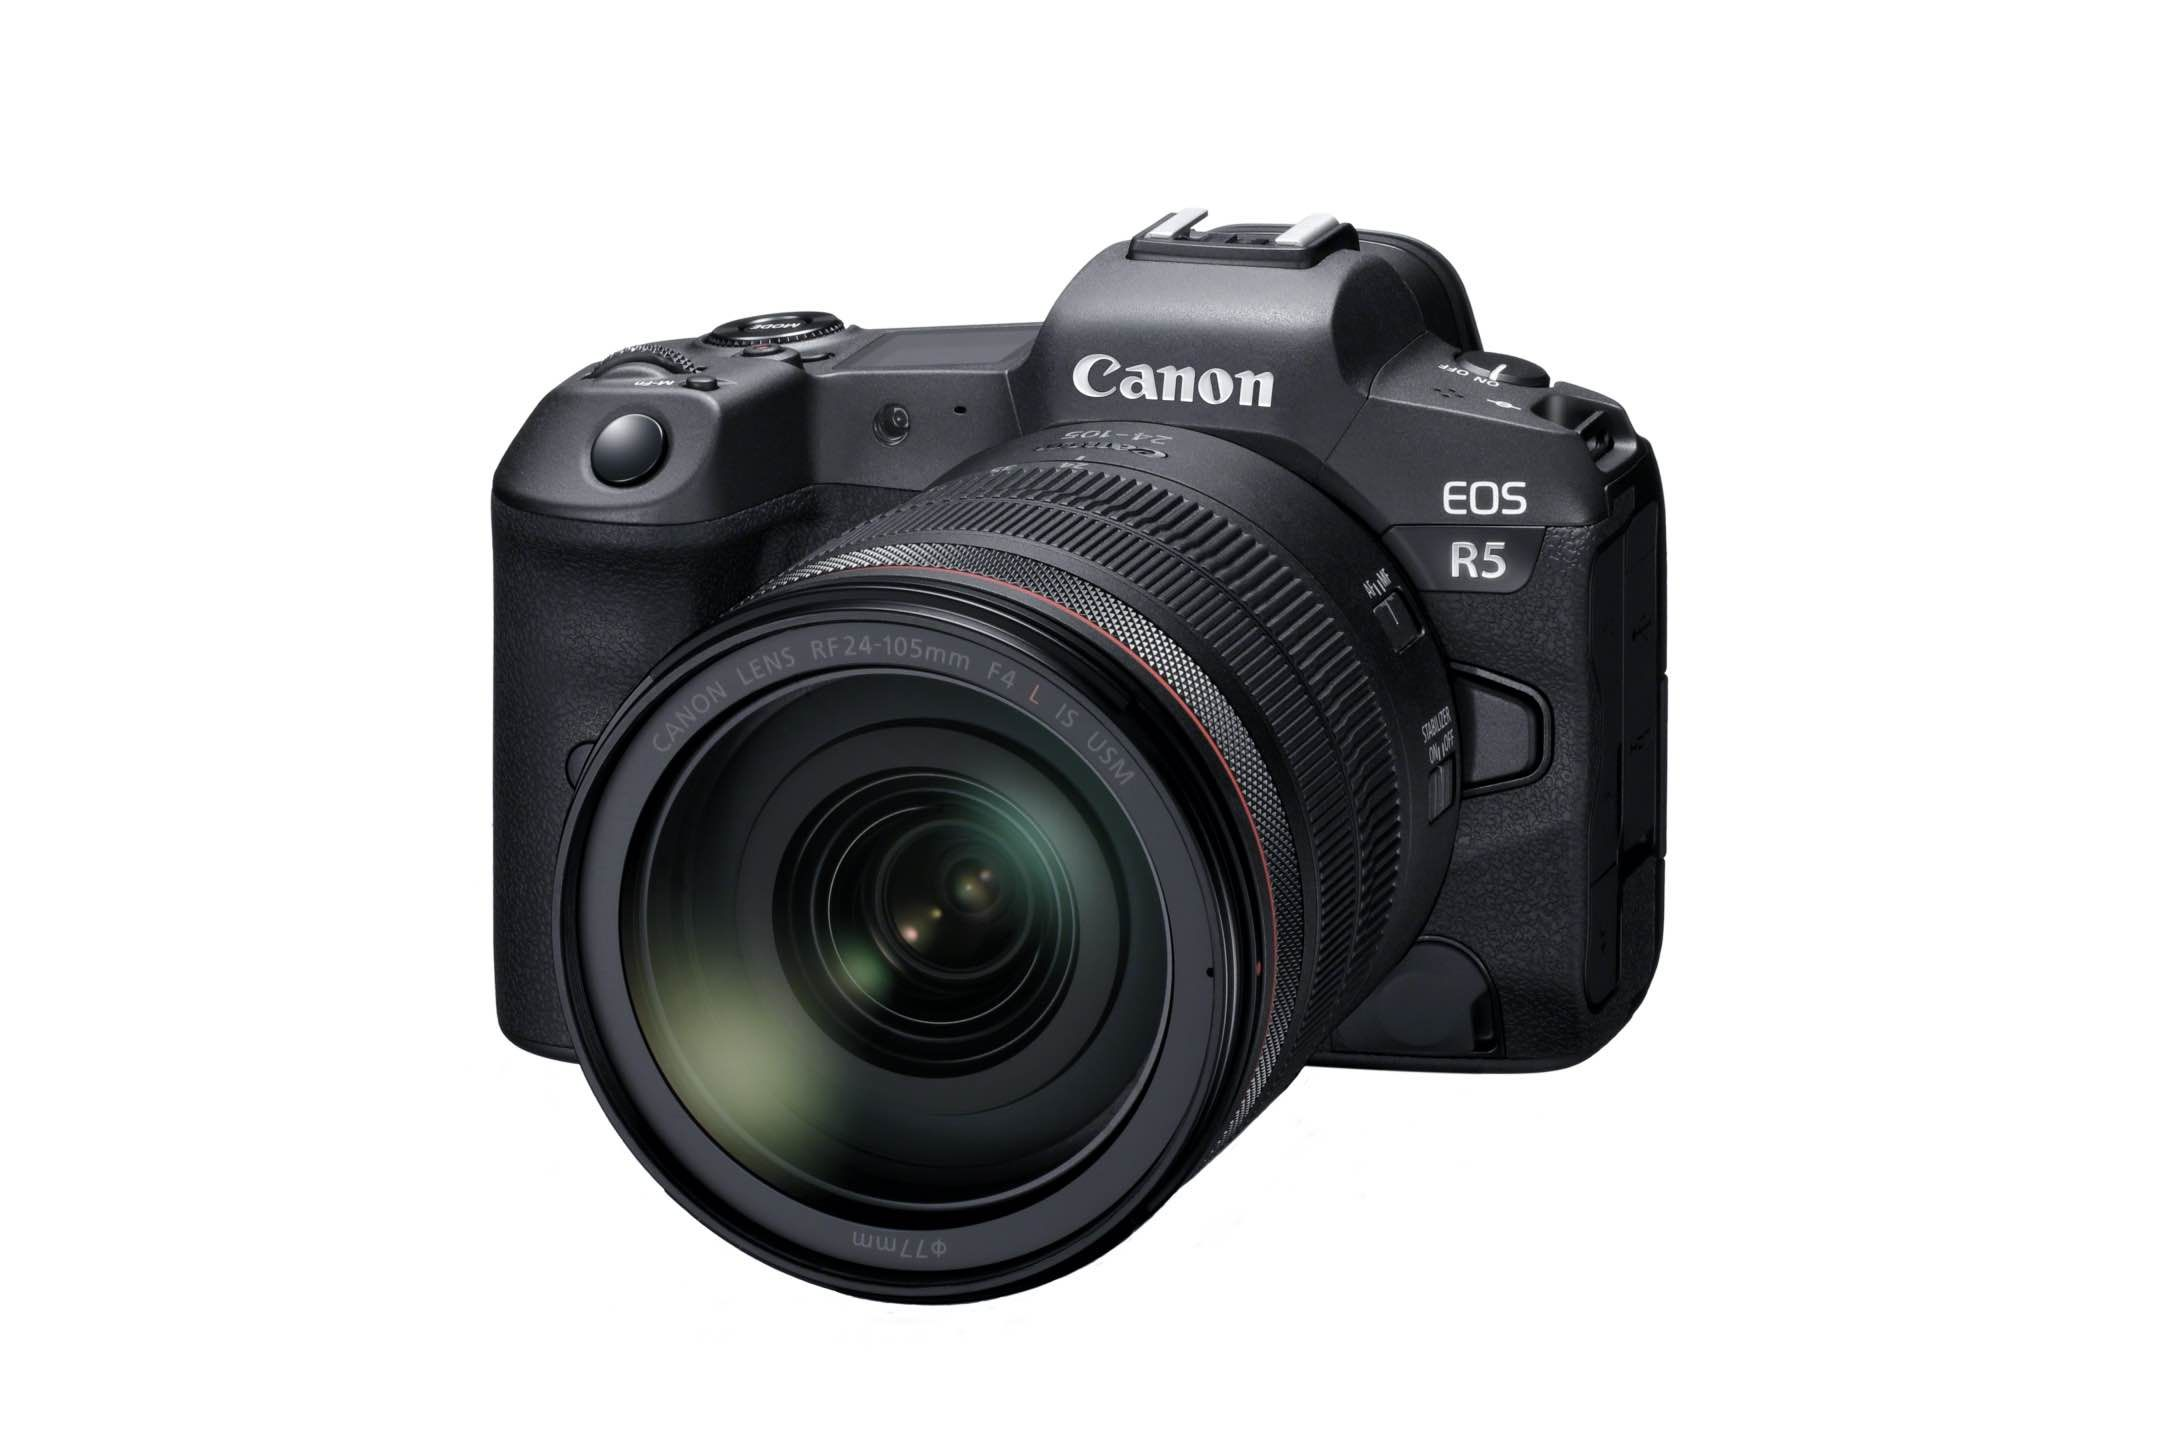 Game Changing 8k Video Capable Eos R5 In 2020 Canon Camera Mirrorless Camera Camera Photography